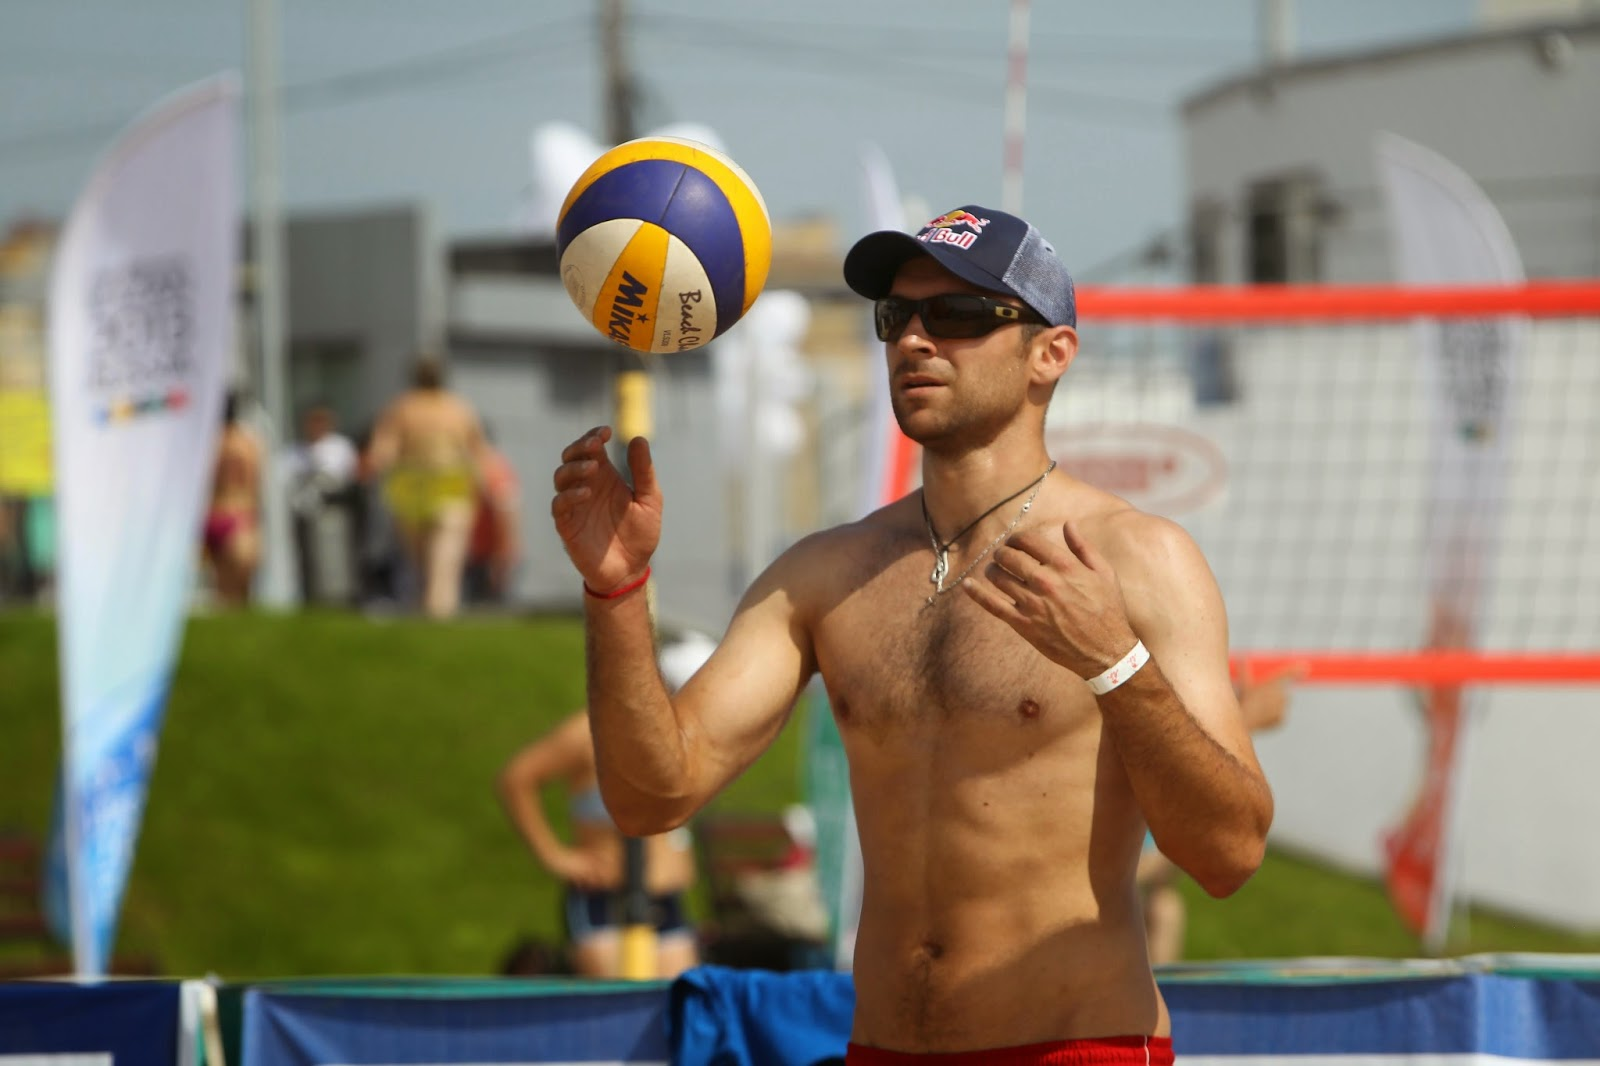 Shirtless Man Beach Volleyball